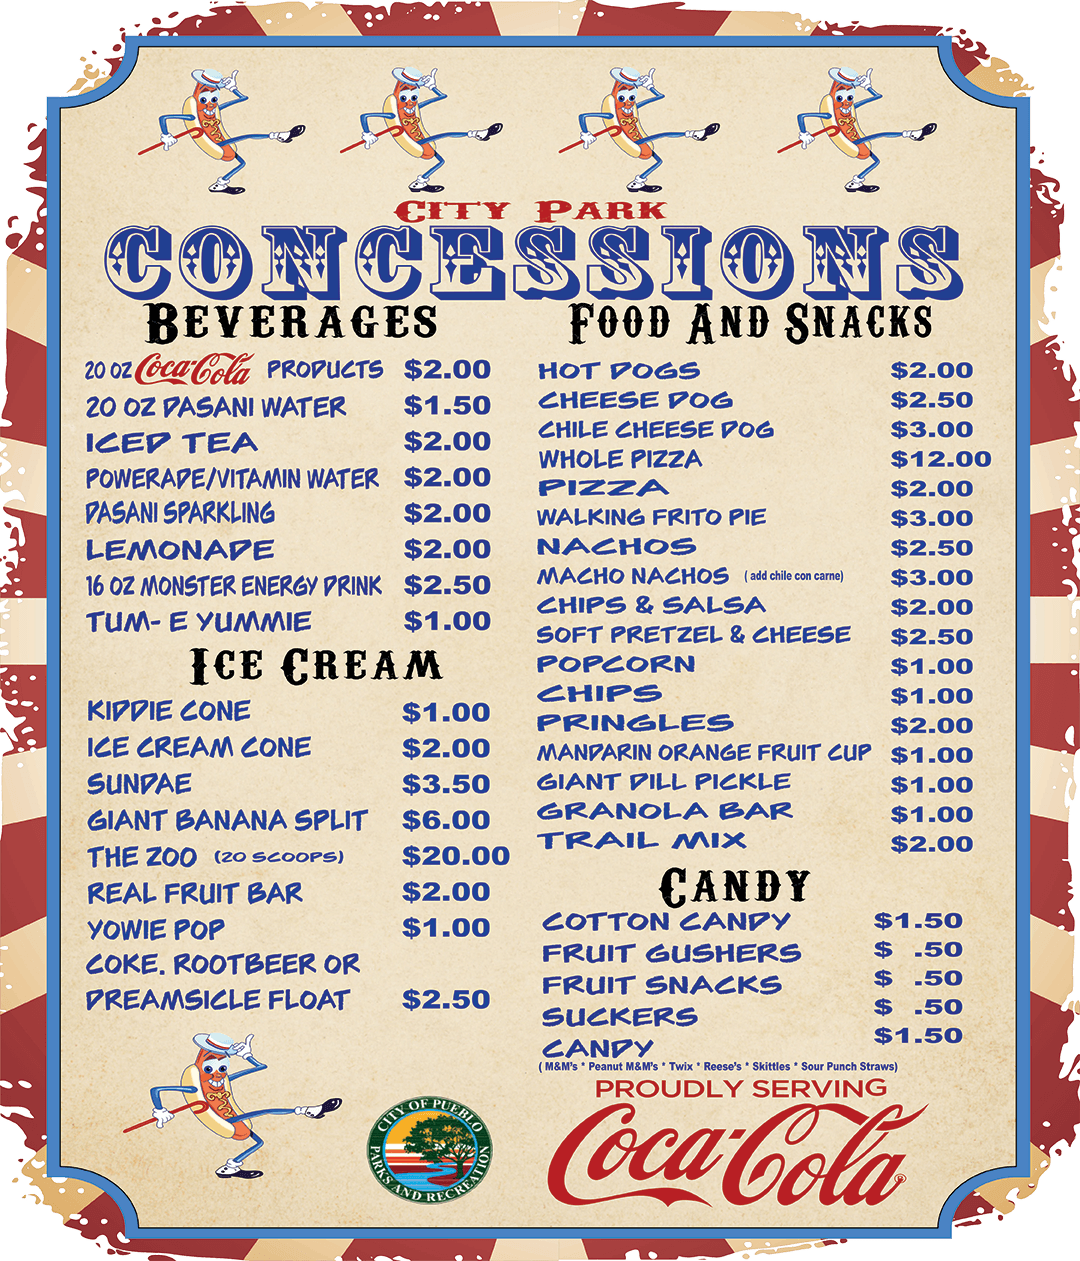 City Park concessions menu